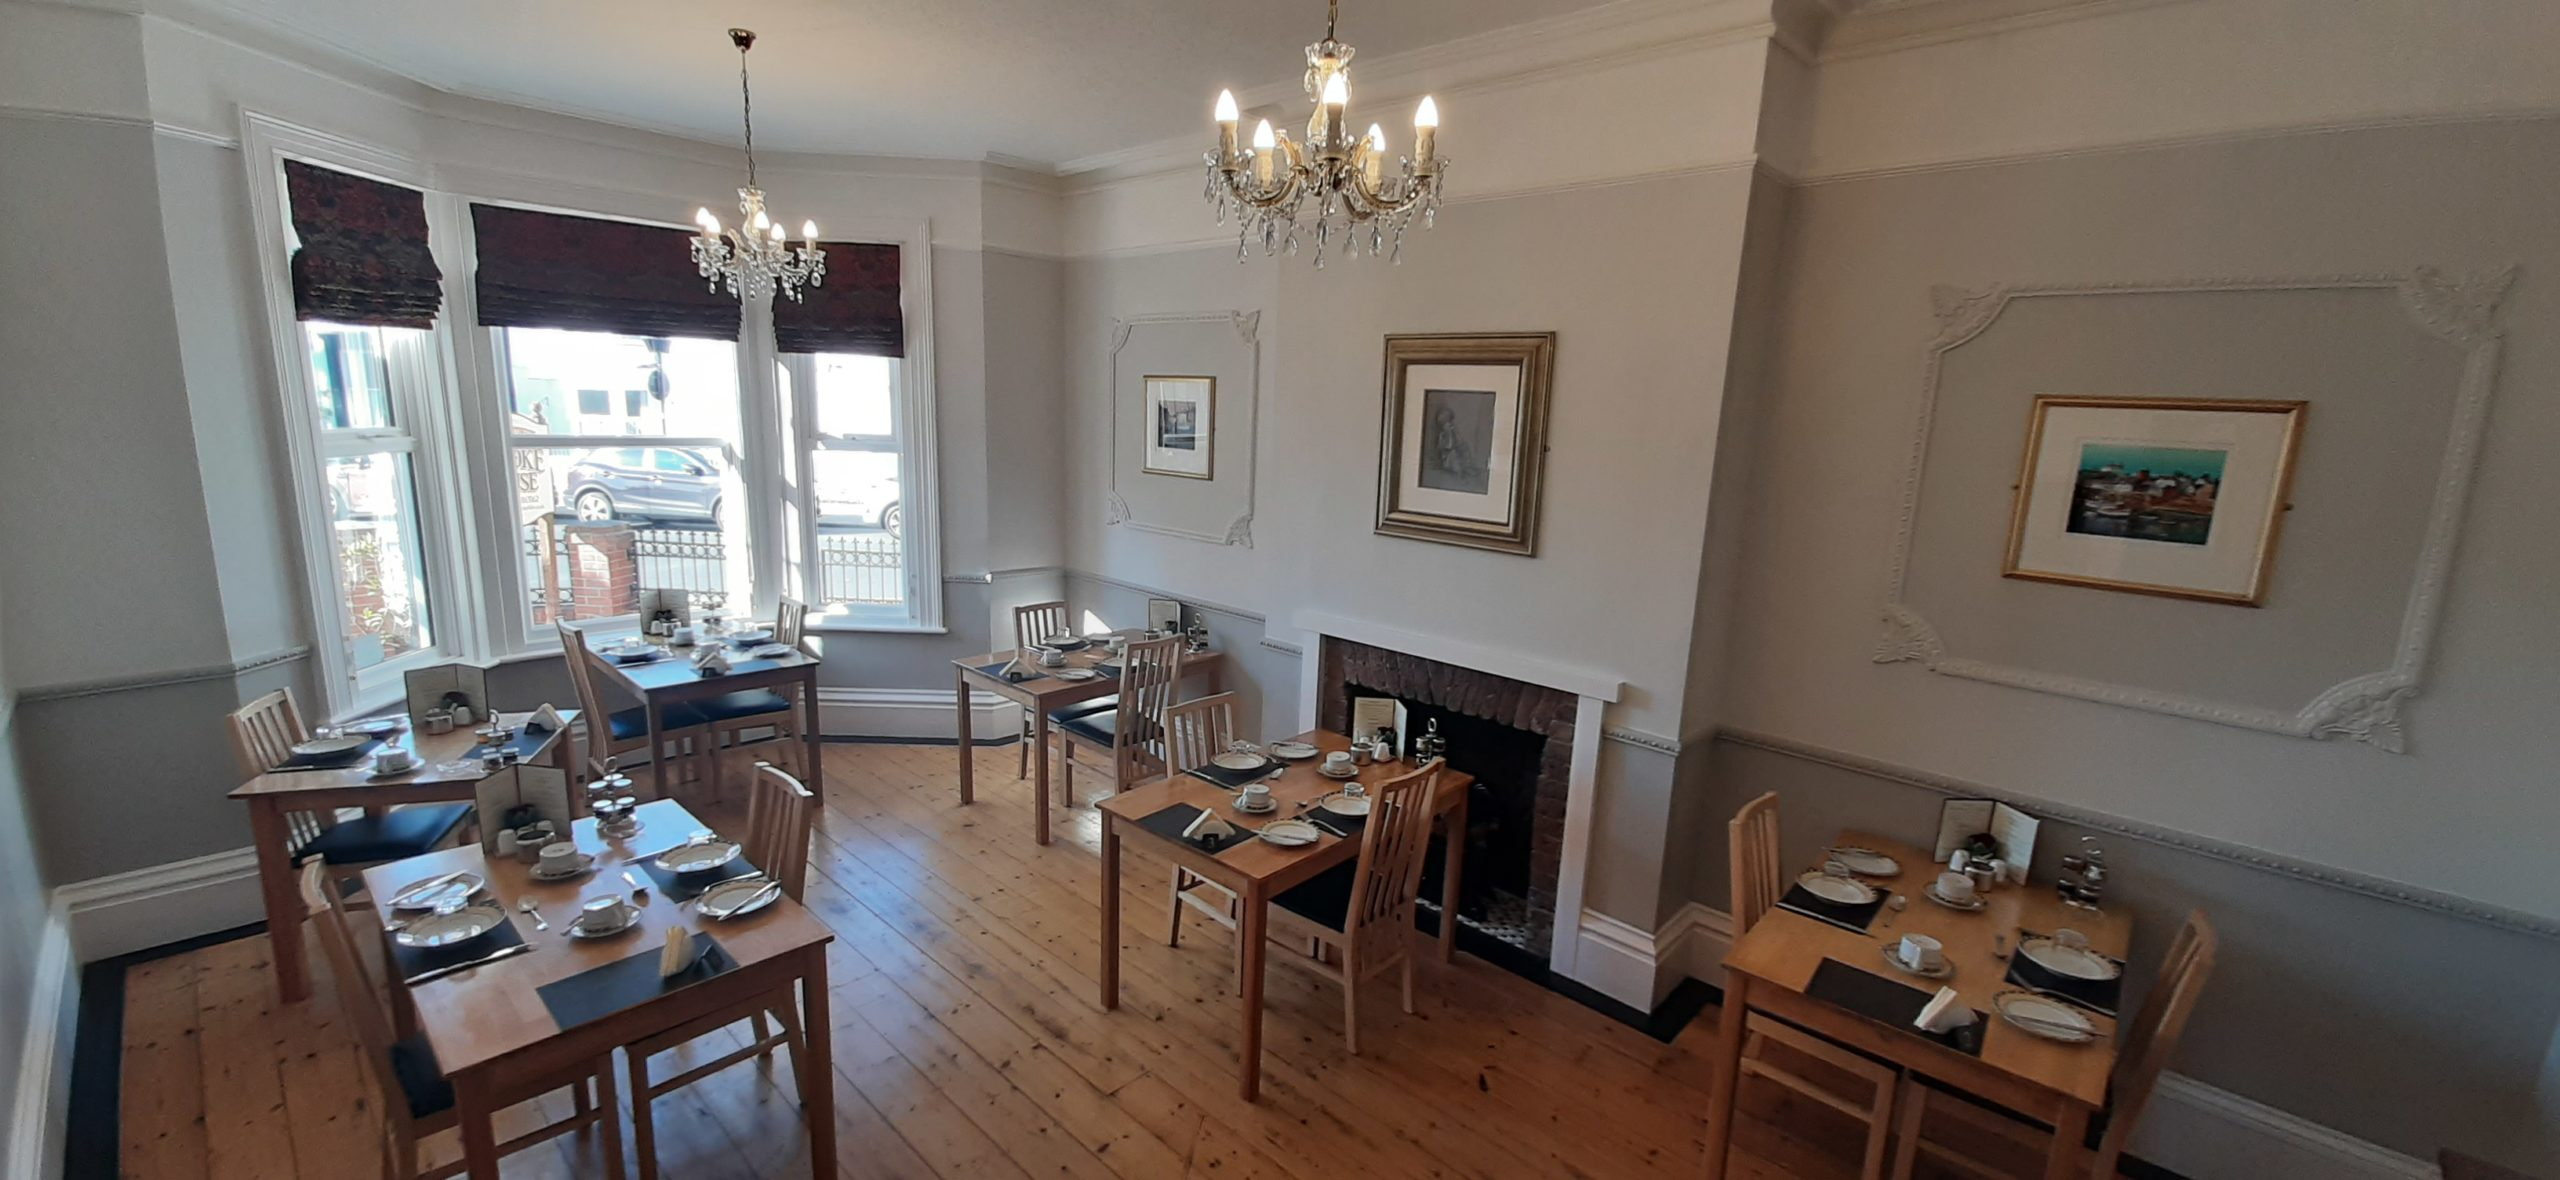 Showing the Dining Room towards the bay window